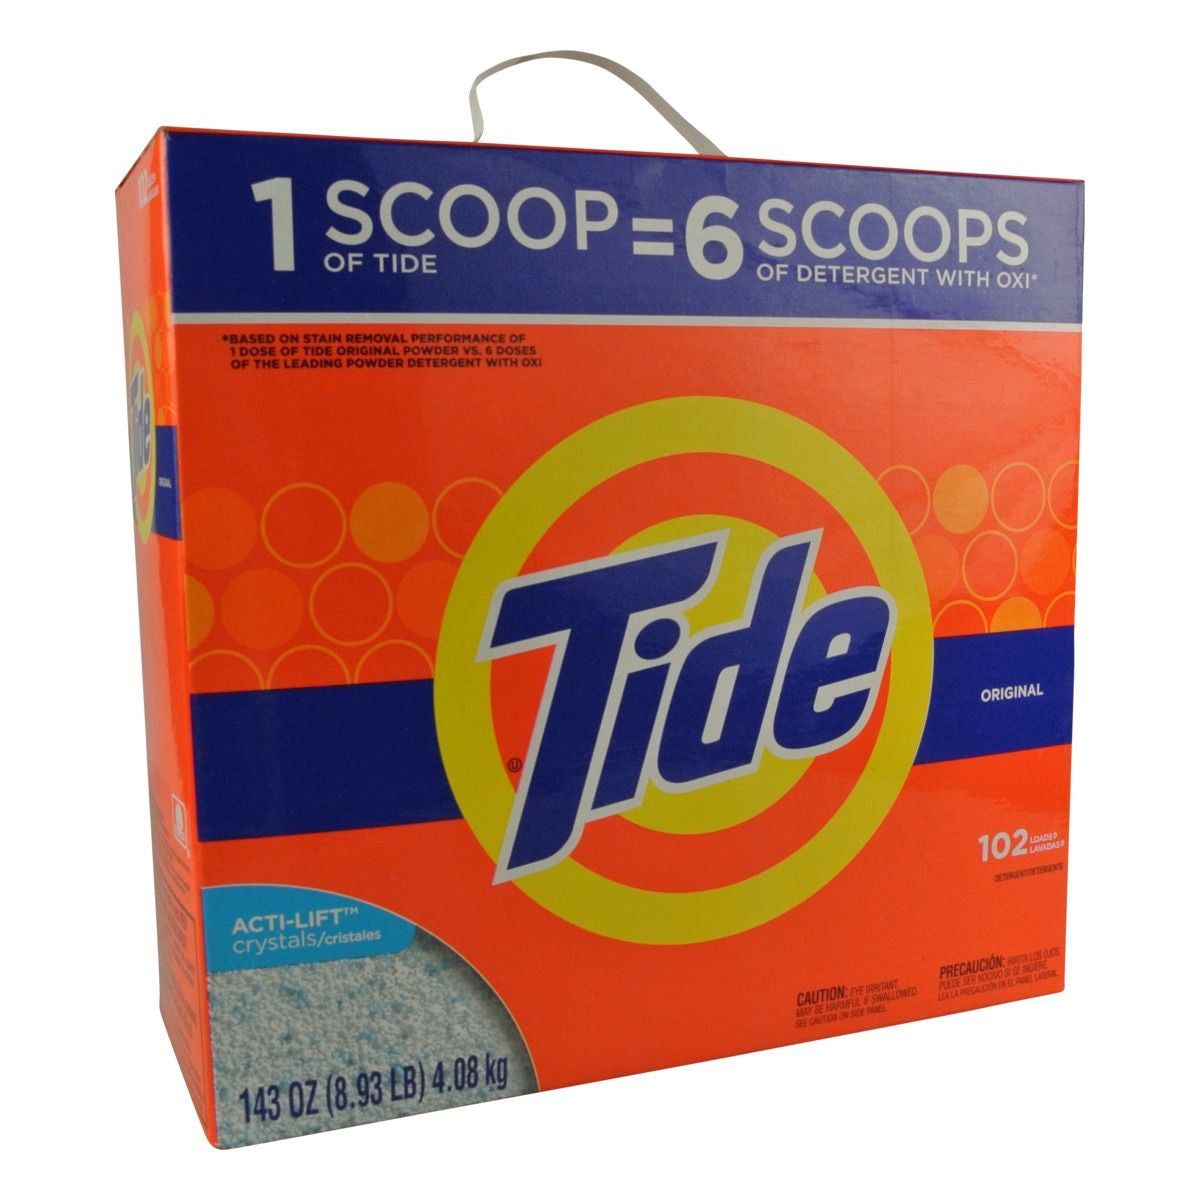 Is arm and hammer powder laundry detergent he - Tide 143 Oz He Powder Laundry Detergent 102 Loads